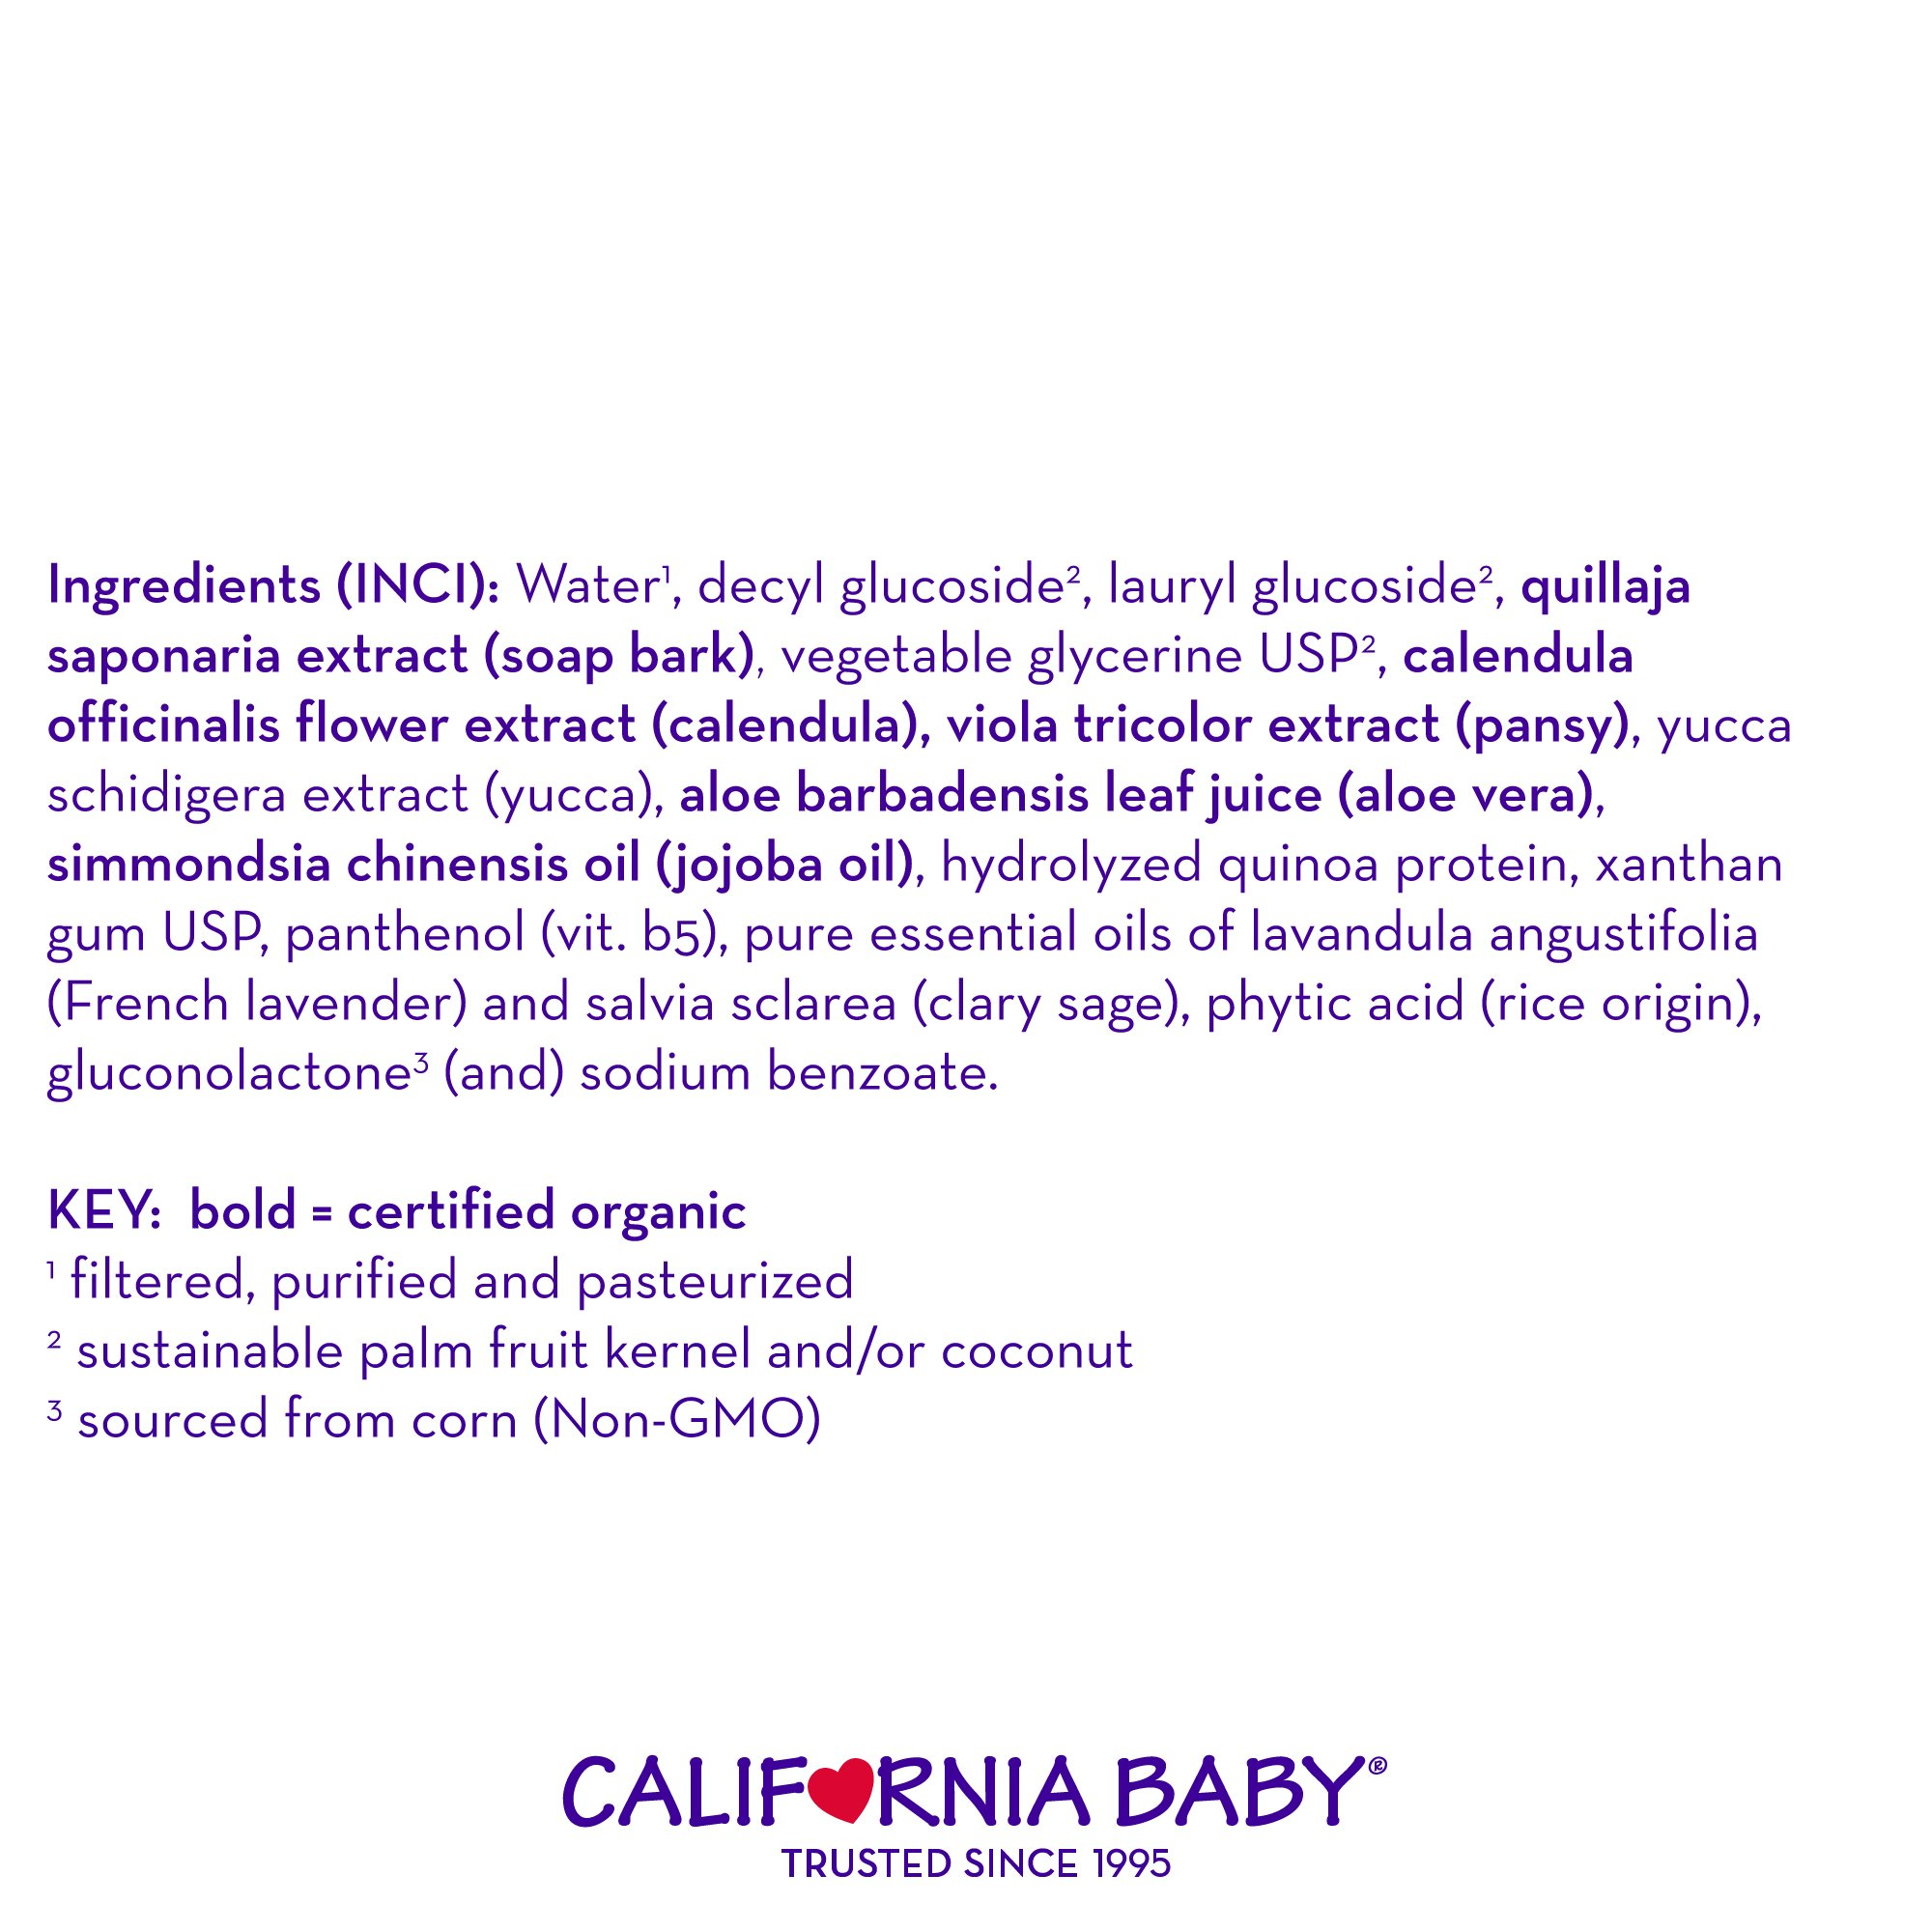 California Baby Calendula Shampoo and Body Wash - Hair, Face, and Body | Gentle, Allergy Tested | Dry, Sensitive Skin, 8.5 Ounces-2Pack by California Baby